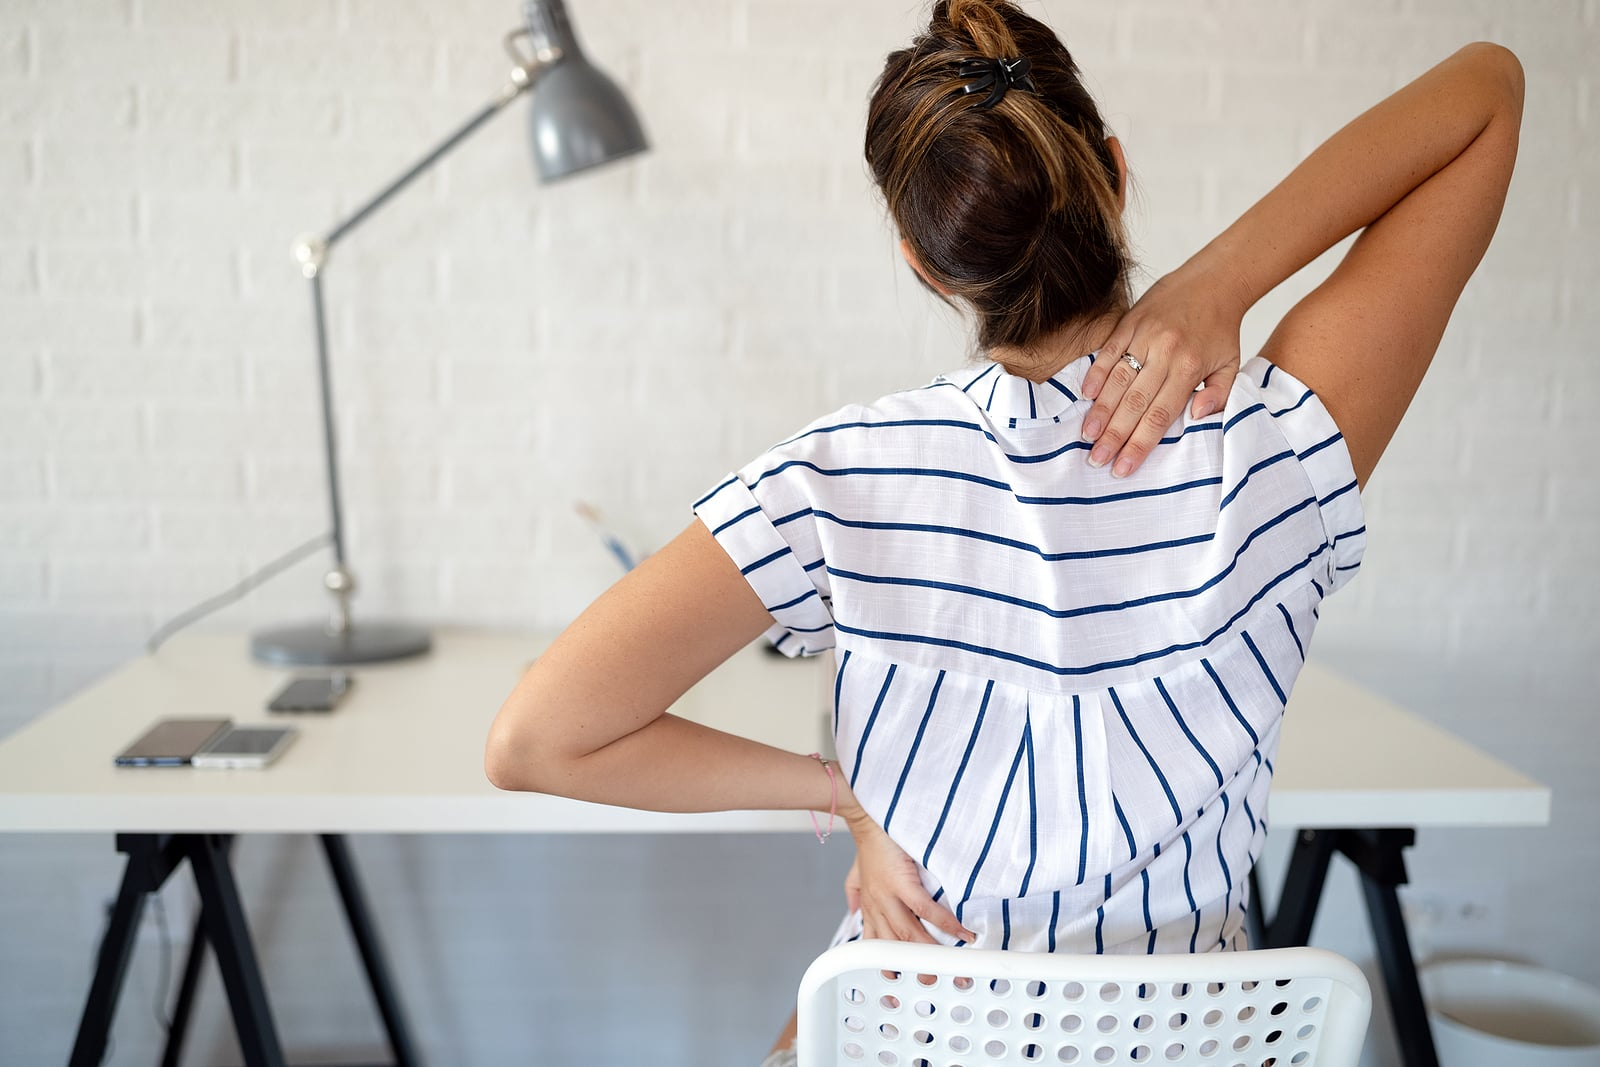 Work-from-home posture advice during COVID + beyond